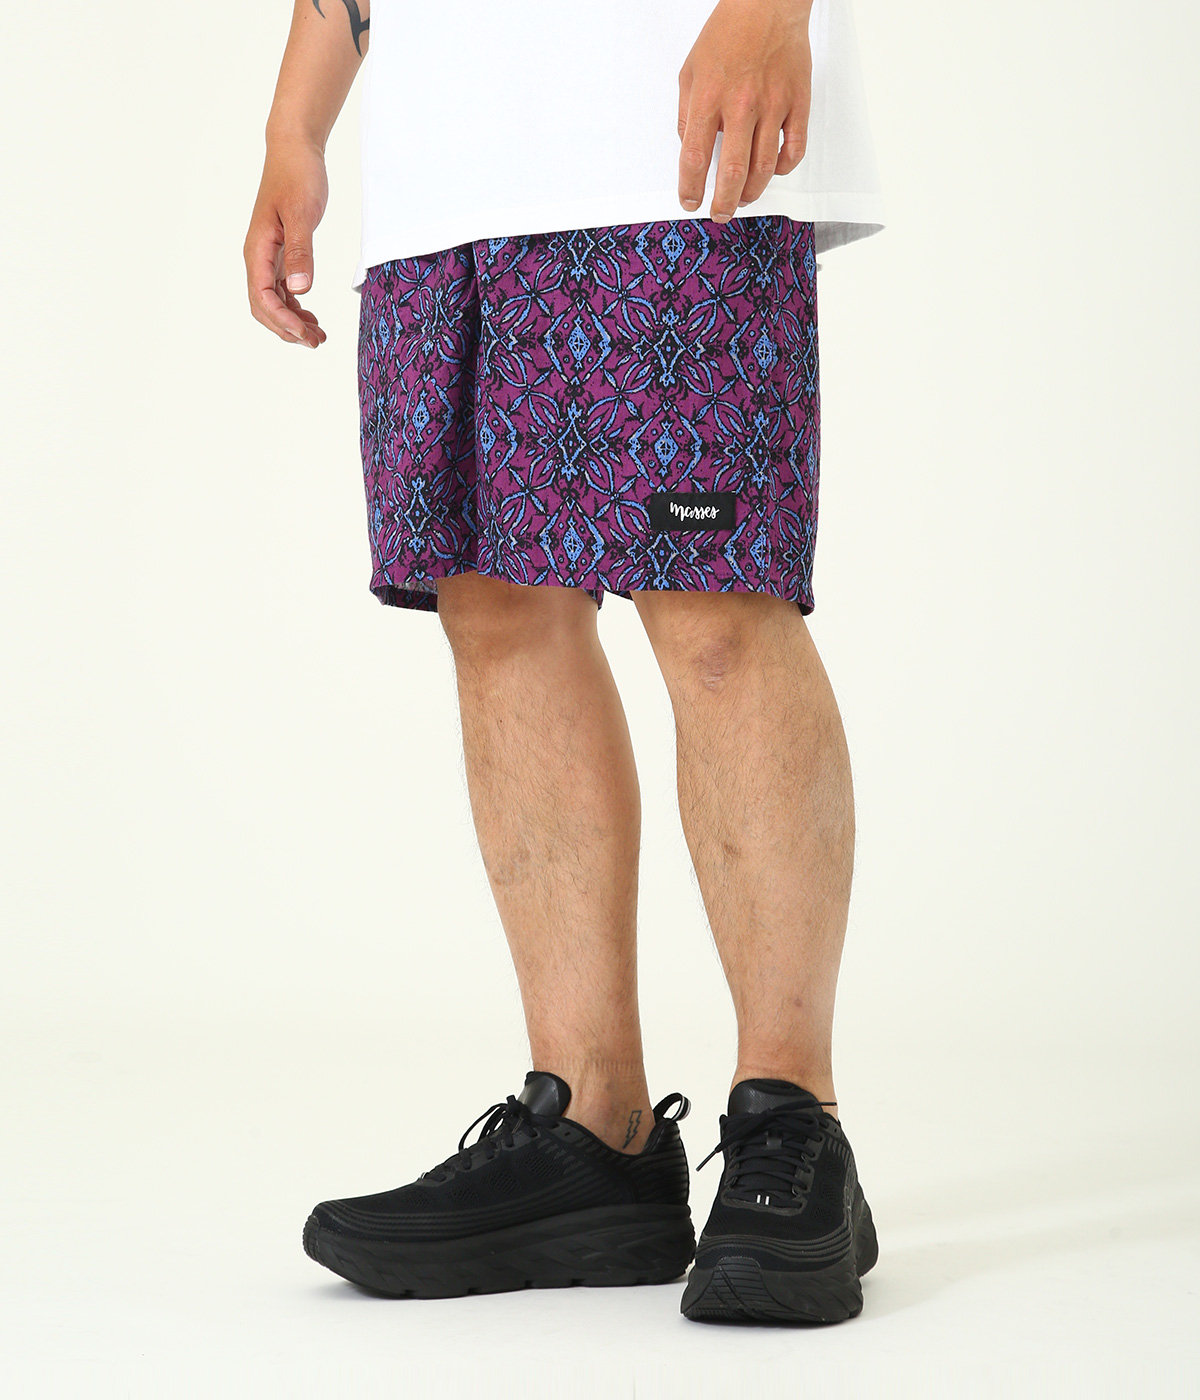 ARABESQUE PATTERN SHORTS